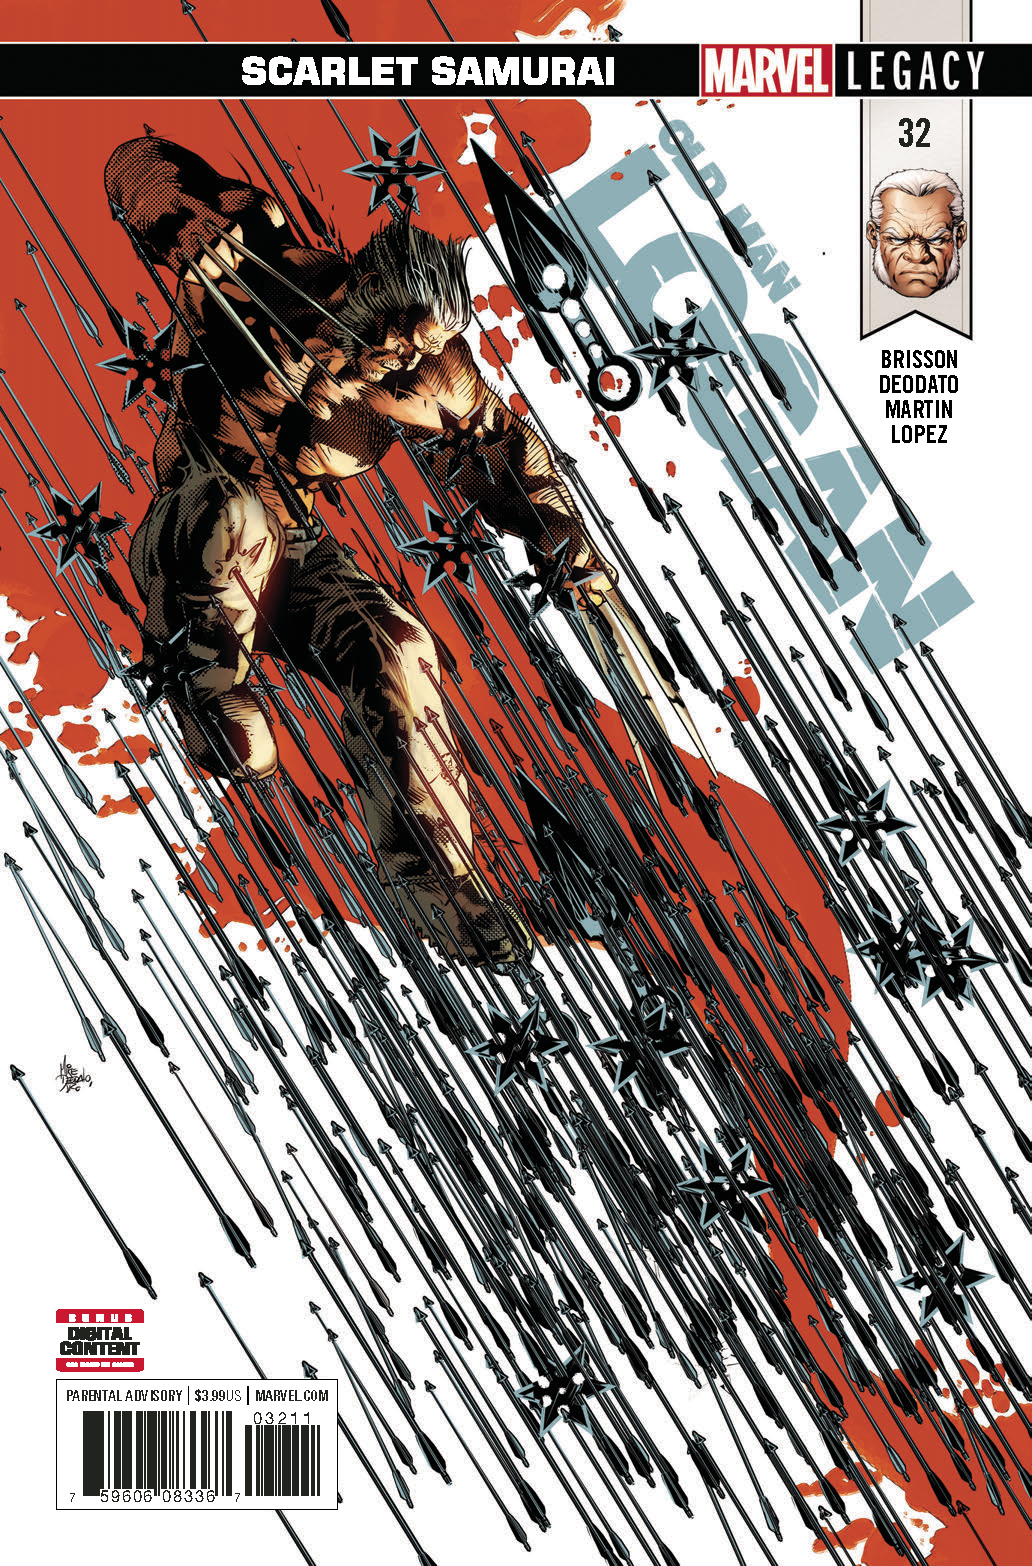 OLD MAN LOGAN #32